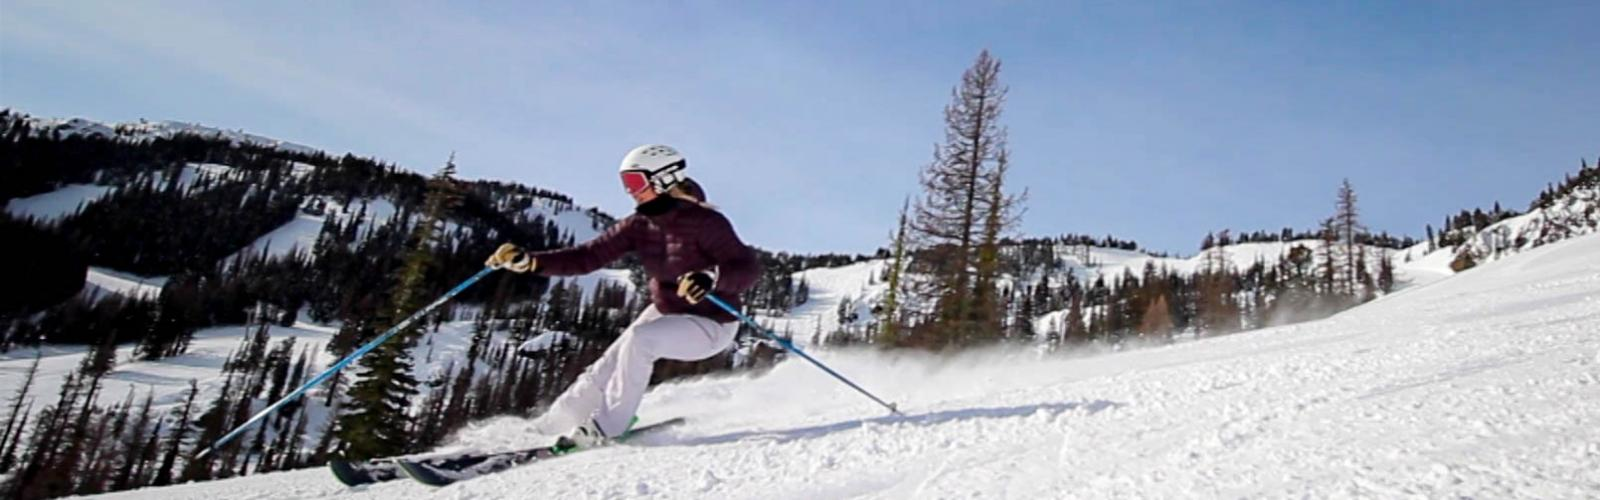 Close up of female skier making turn with ski area behind